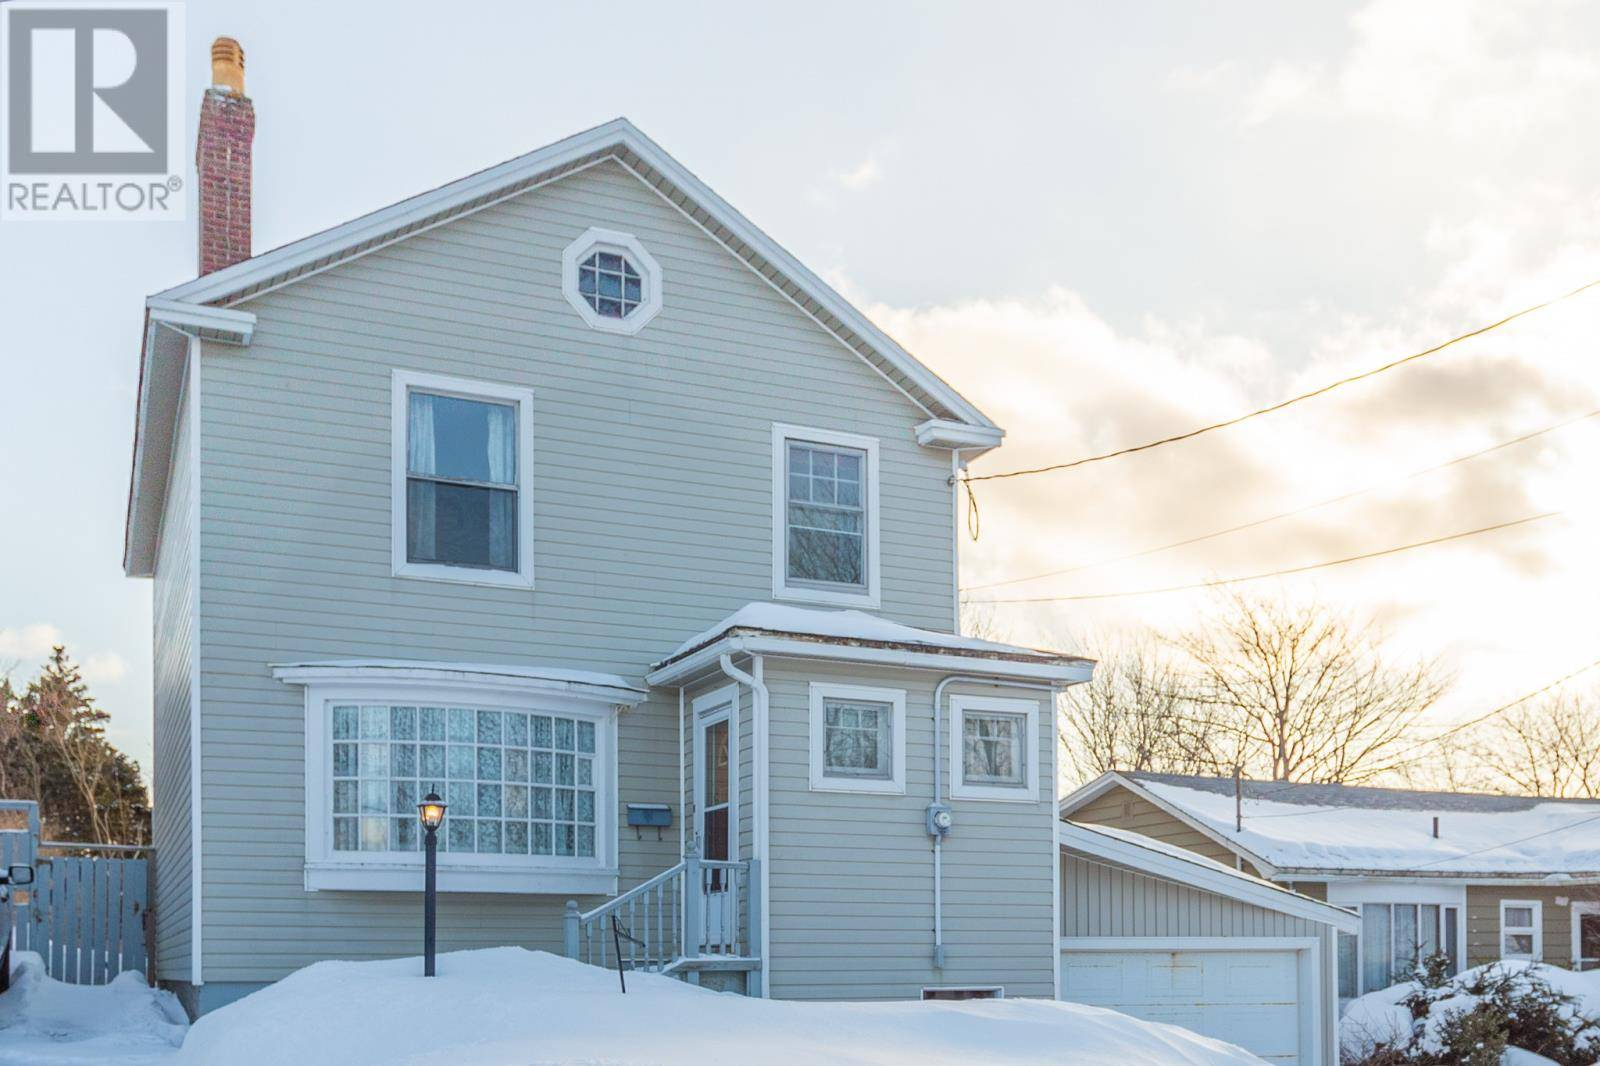 House for sale at 15 First Ave St. John's Newfoundland - MLS: 1209611